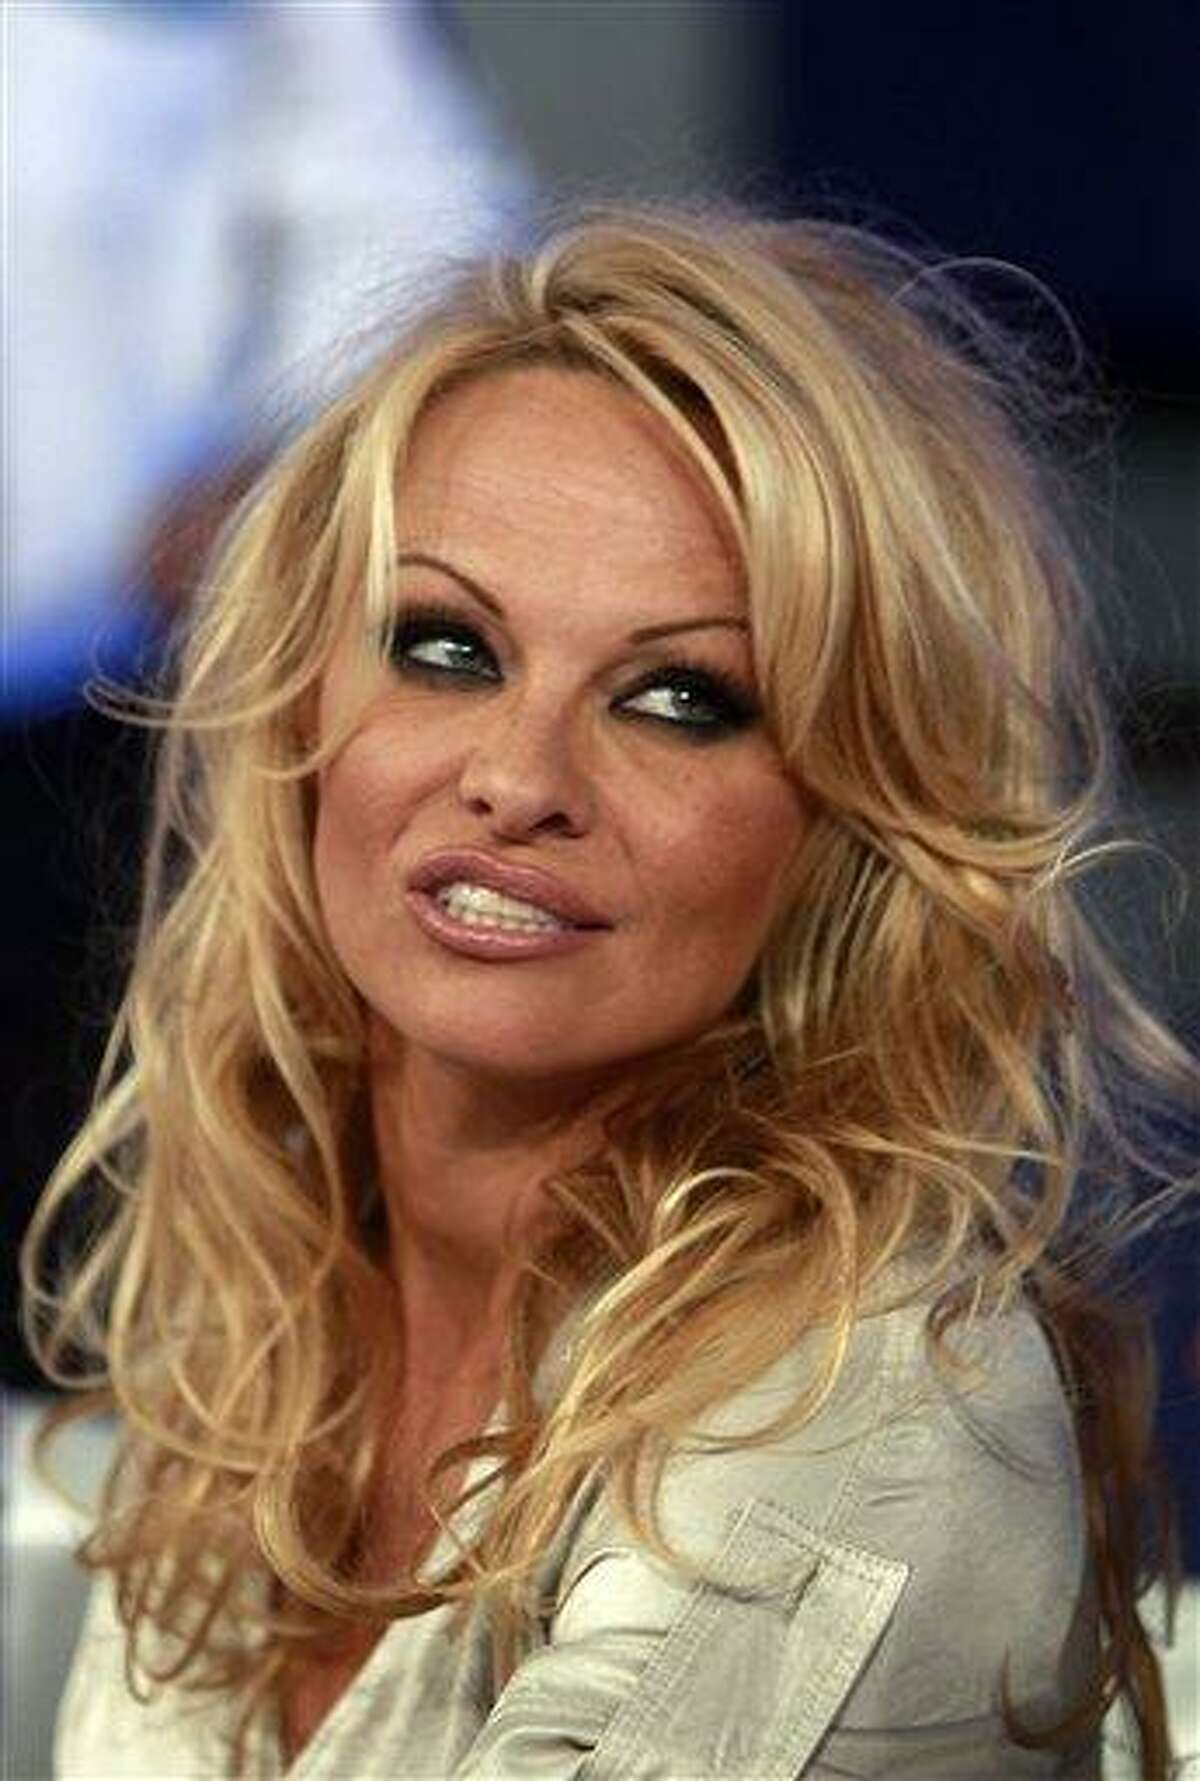 """FILE - In this Sept. 25, 2011 file photo, Canada's actress Pamela Anderson looks on during a news conference after taking part in the Mexican reality show """"La Academia"""" at Azteca TV studios in Mexico City. Anderson and Lionel Richie owe the government money. California tax authorities have put Anderson on the latest list of the state's biggest income-tax delinquents. The Franchise Tax Board said the former """"Baywatch"""" star owes $524,241 in state income taxes. Meanwhile, E! Online reports that Richie, a music legend, owes the federal government $1.1 million in unpaid taxes and that a lien has been issued warning that the singers' assets may be seized if he doesn't pay up in a timely manner. (AP Photo/Moises Castillo, File)"""